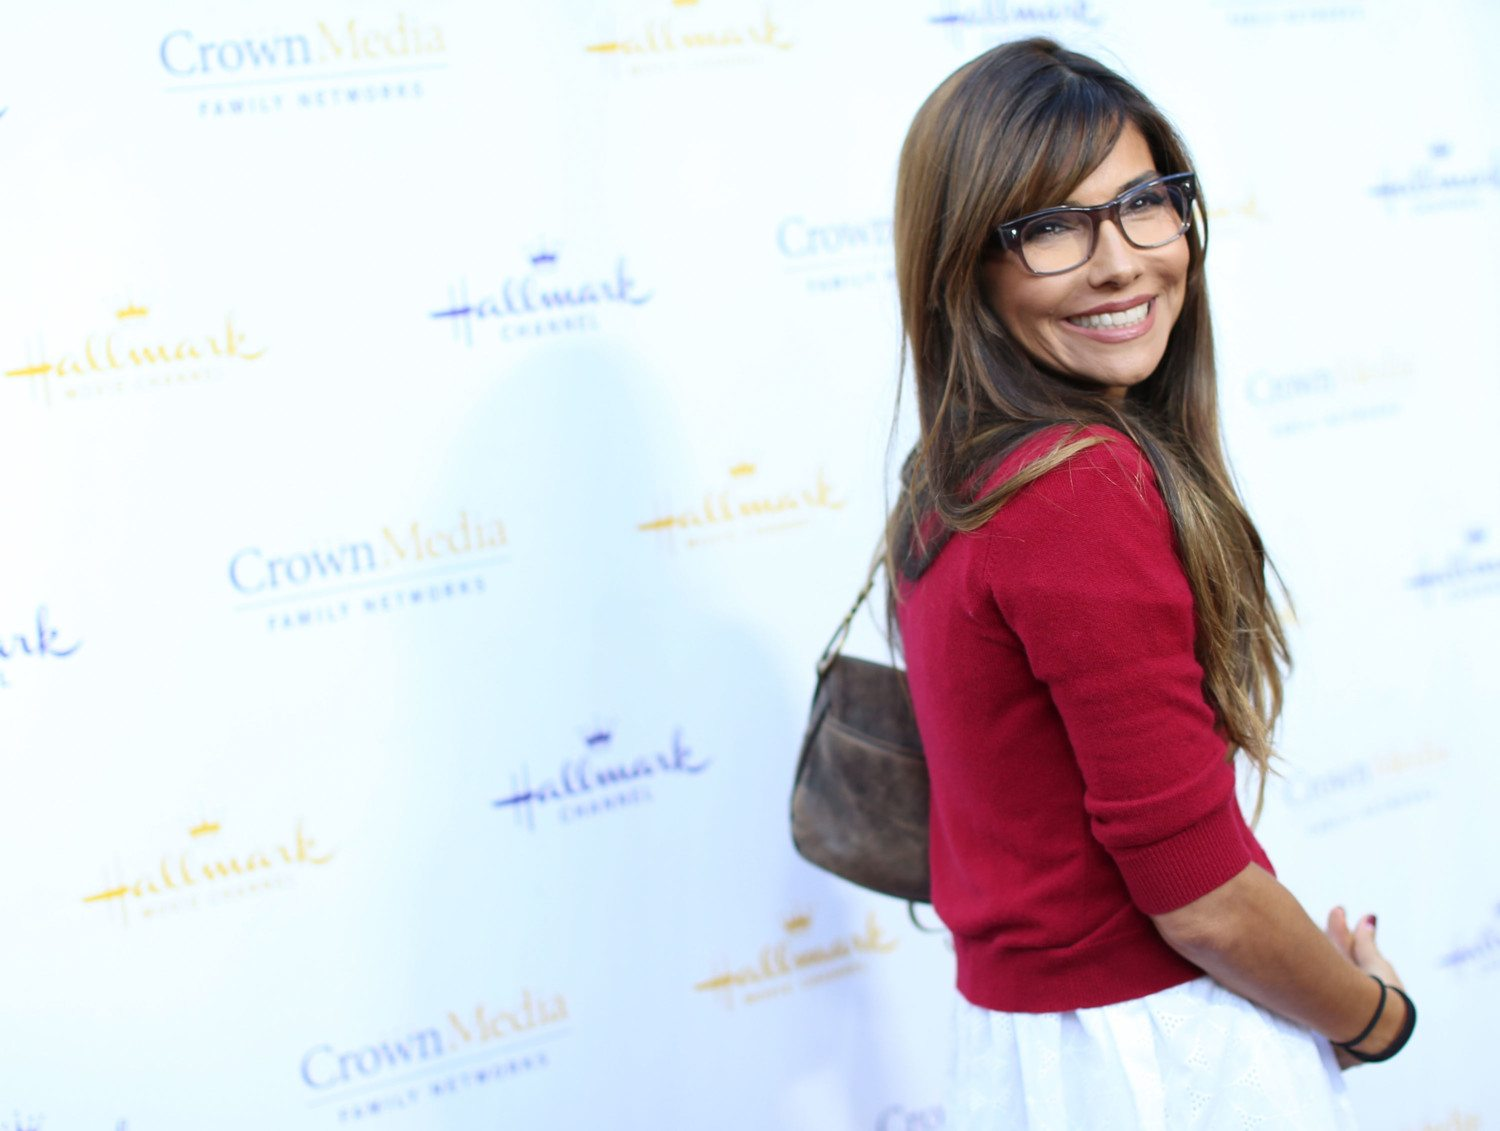 vanessa marcil photo